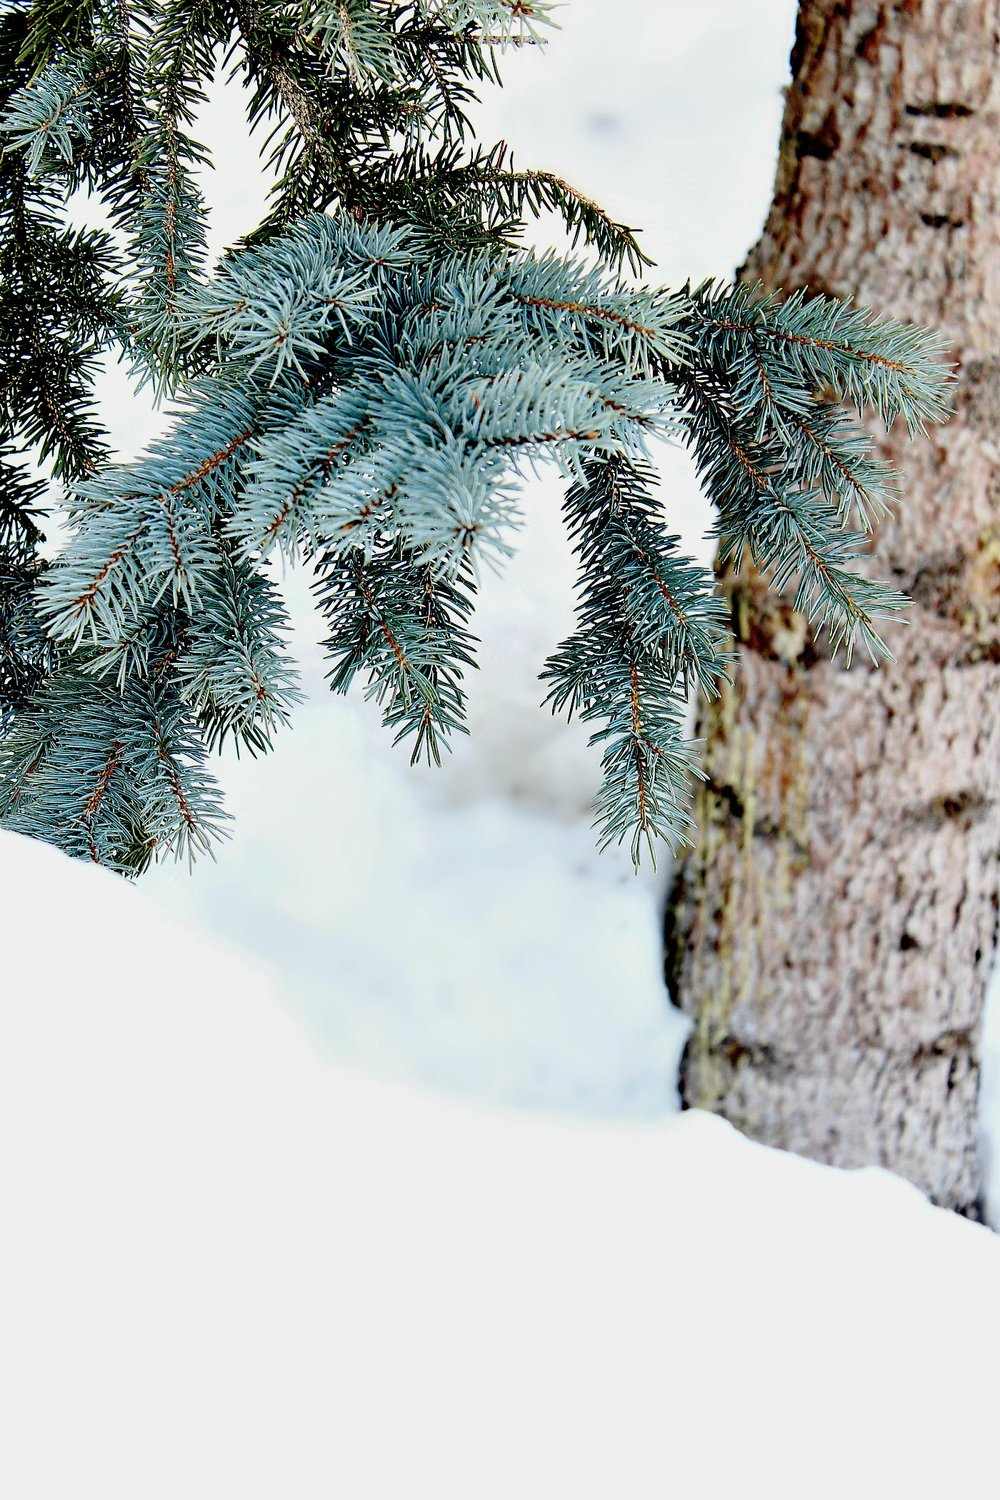 snow-tree-trunk-green-needles-evergreen-tree-dark.jpg